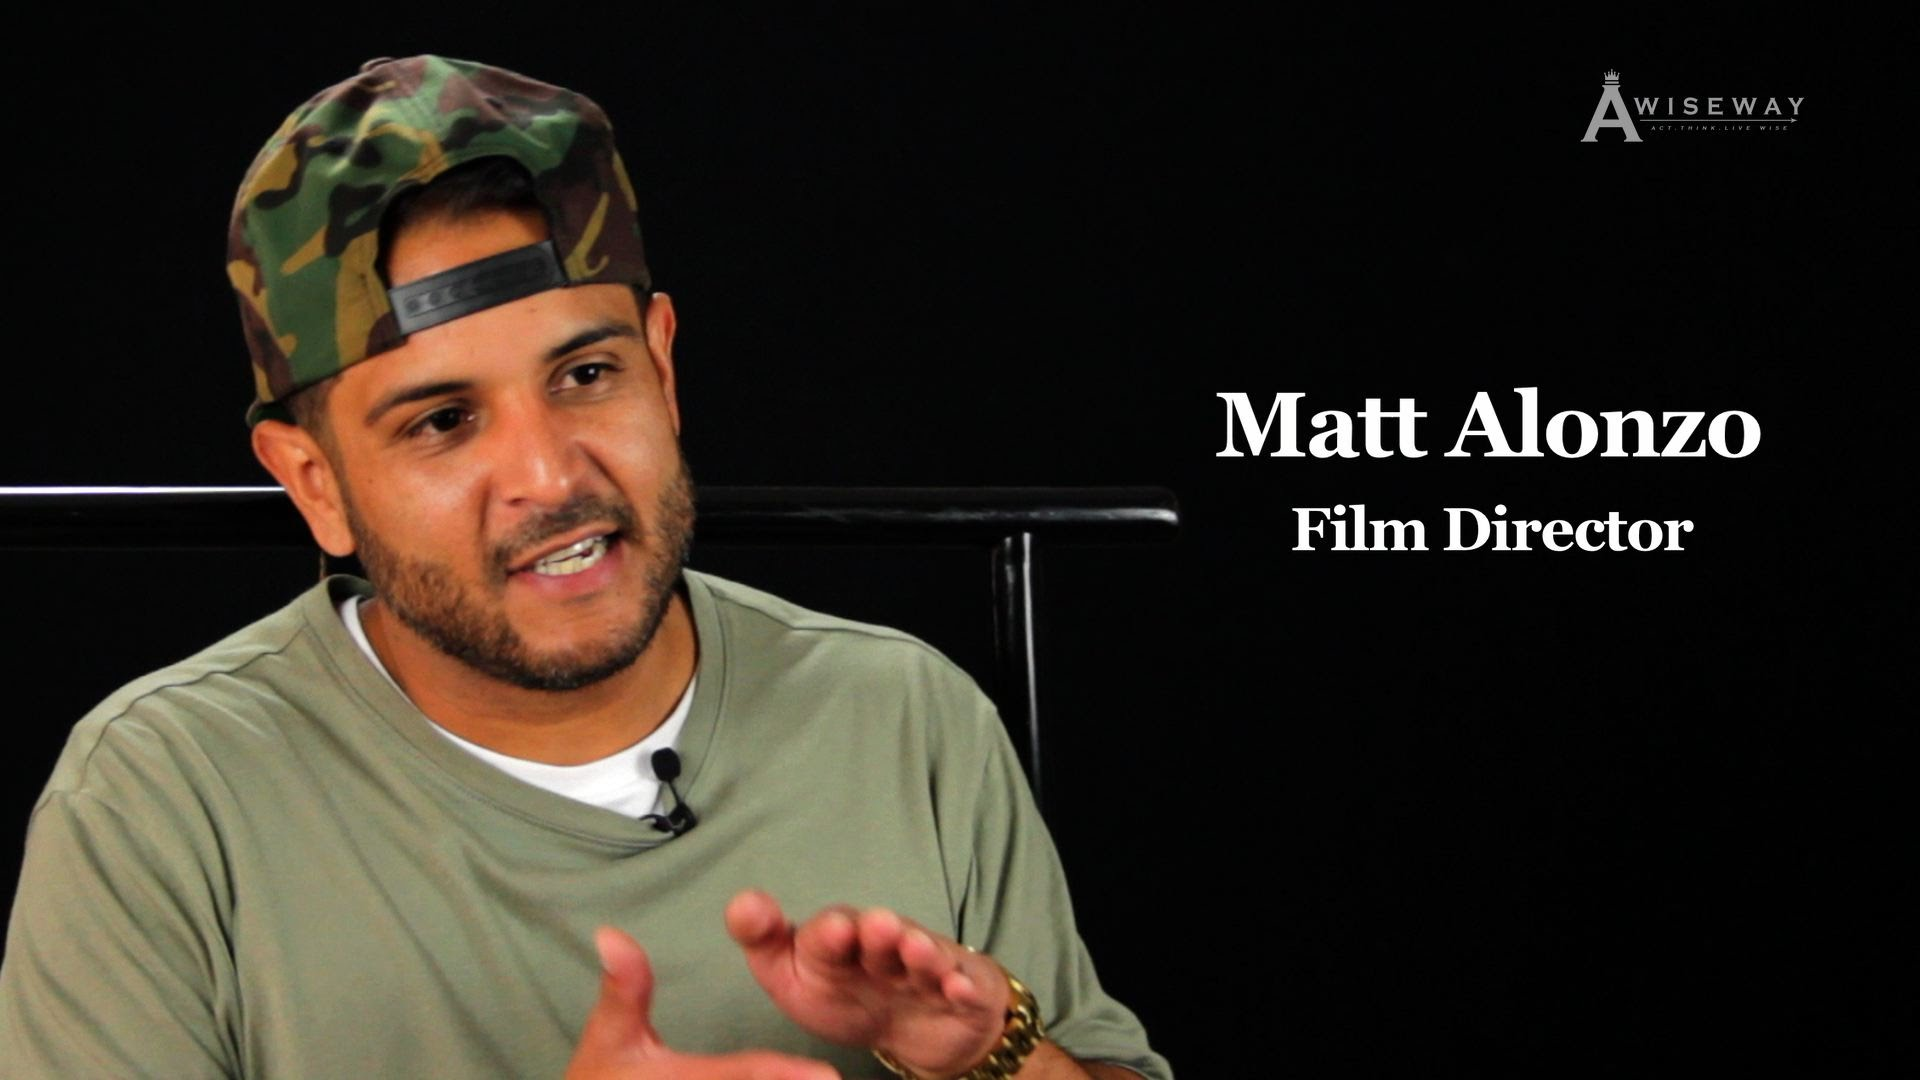 Matt Alonzo, Film Director Explains Differences Between Director and Producer